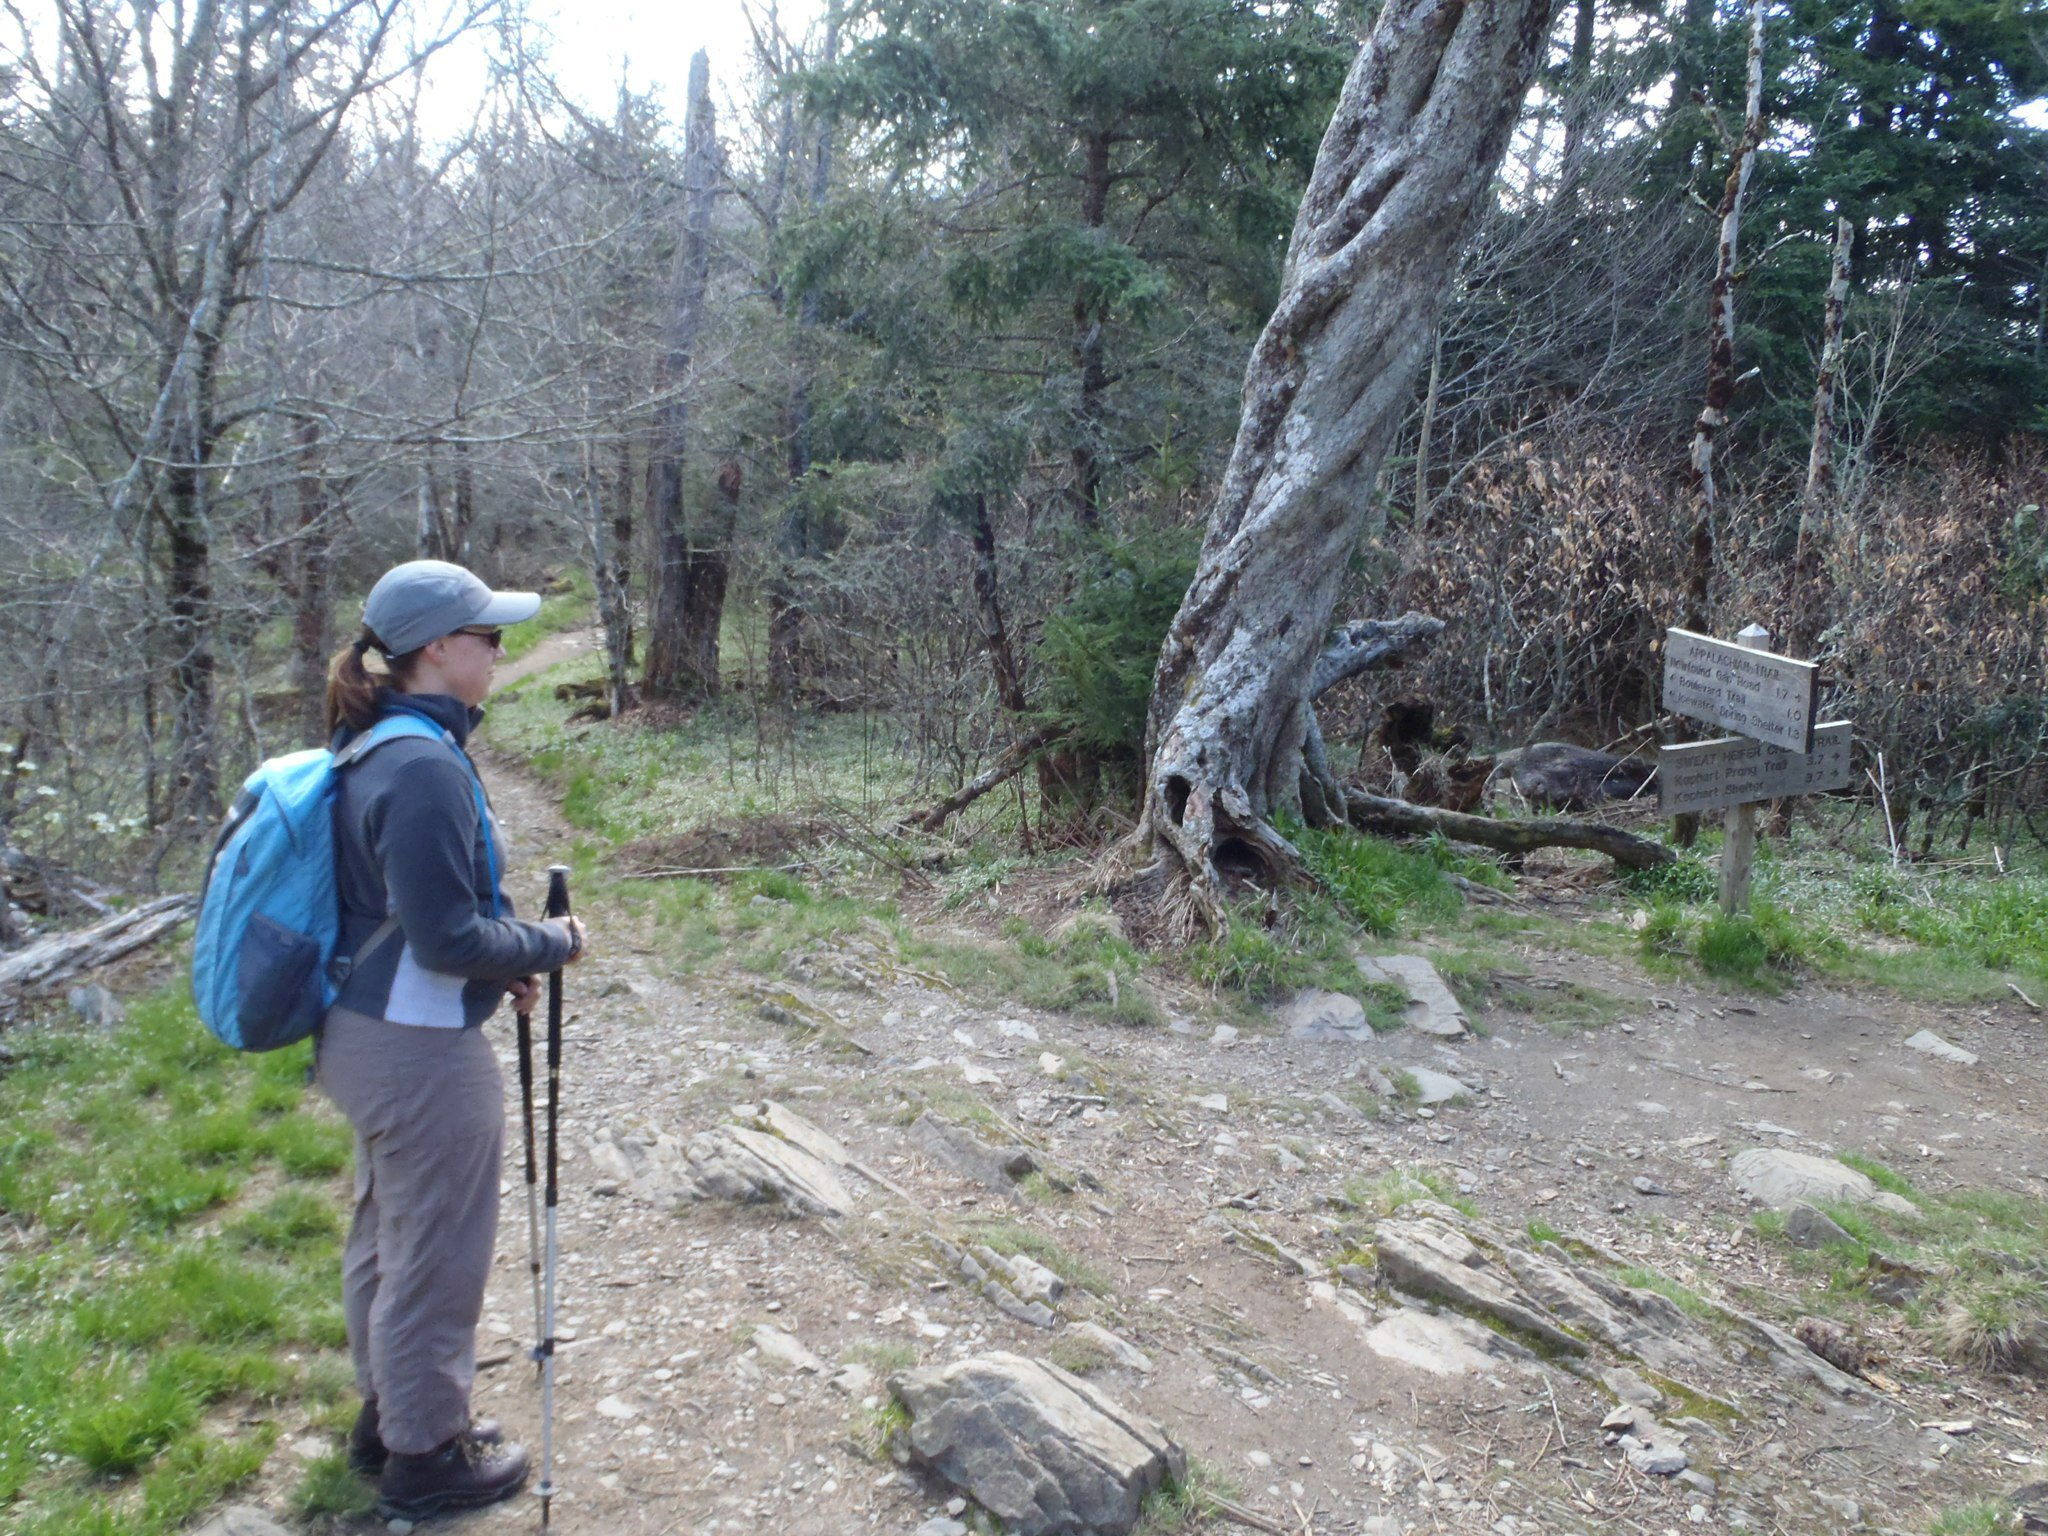 Hiking on the Appalachian Trail in the Spring of 2011 - thinking how hard it would be to go all the way to Maine one day!